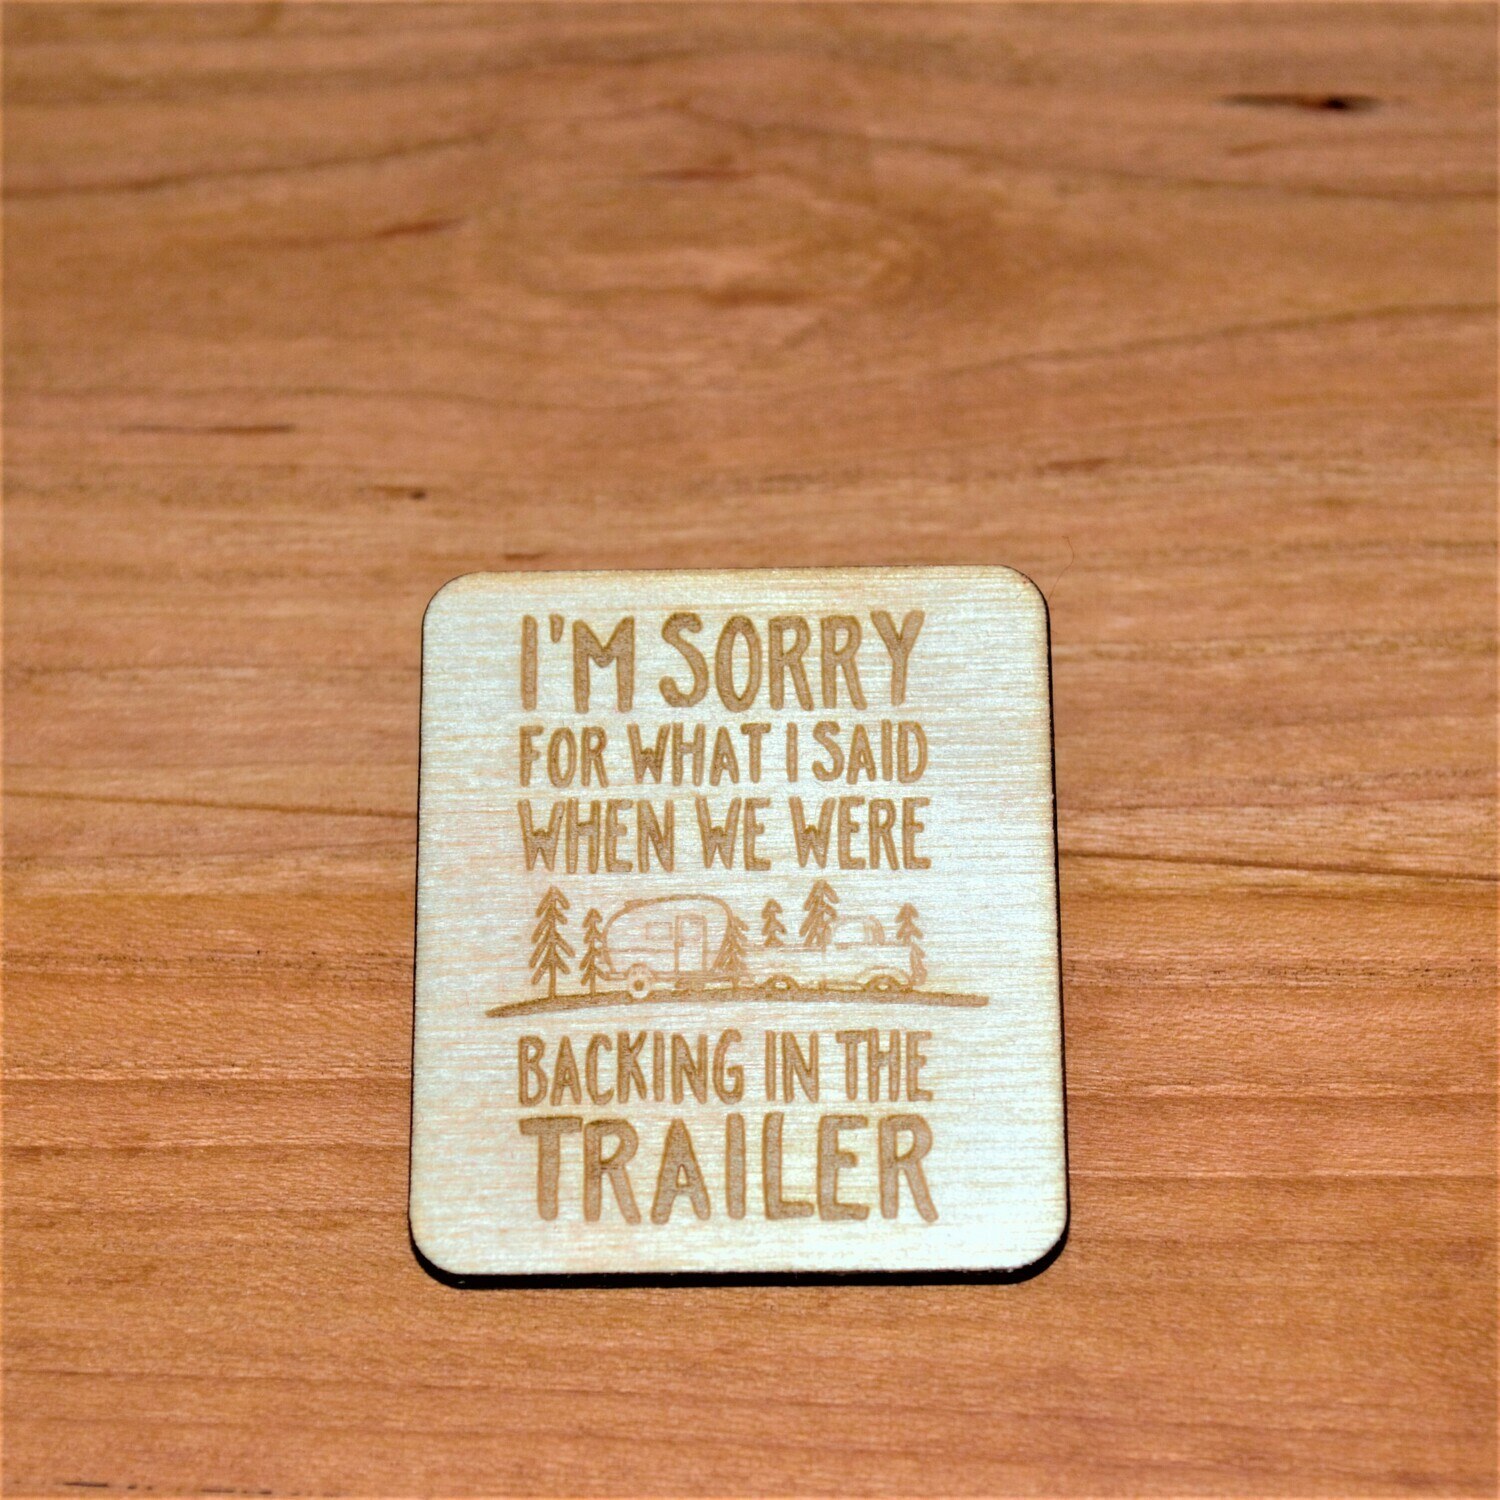 Sorry For What I said Trailer Wooden Magnet